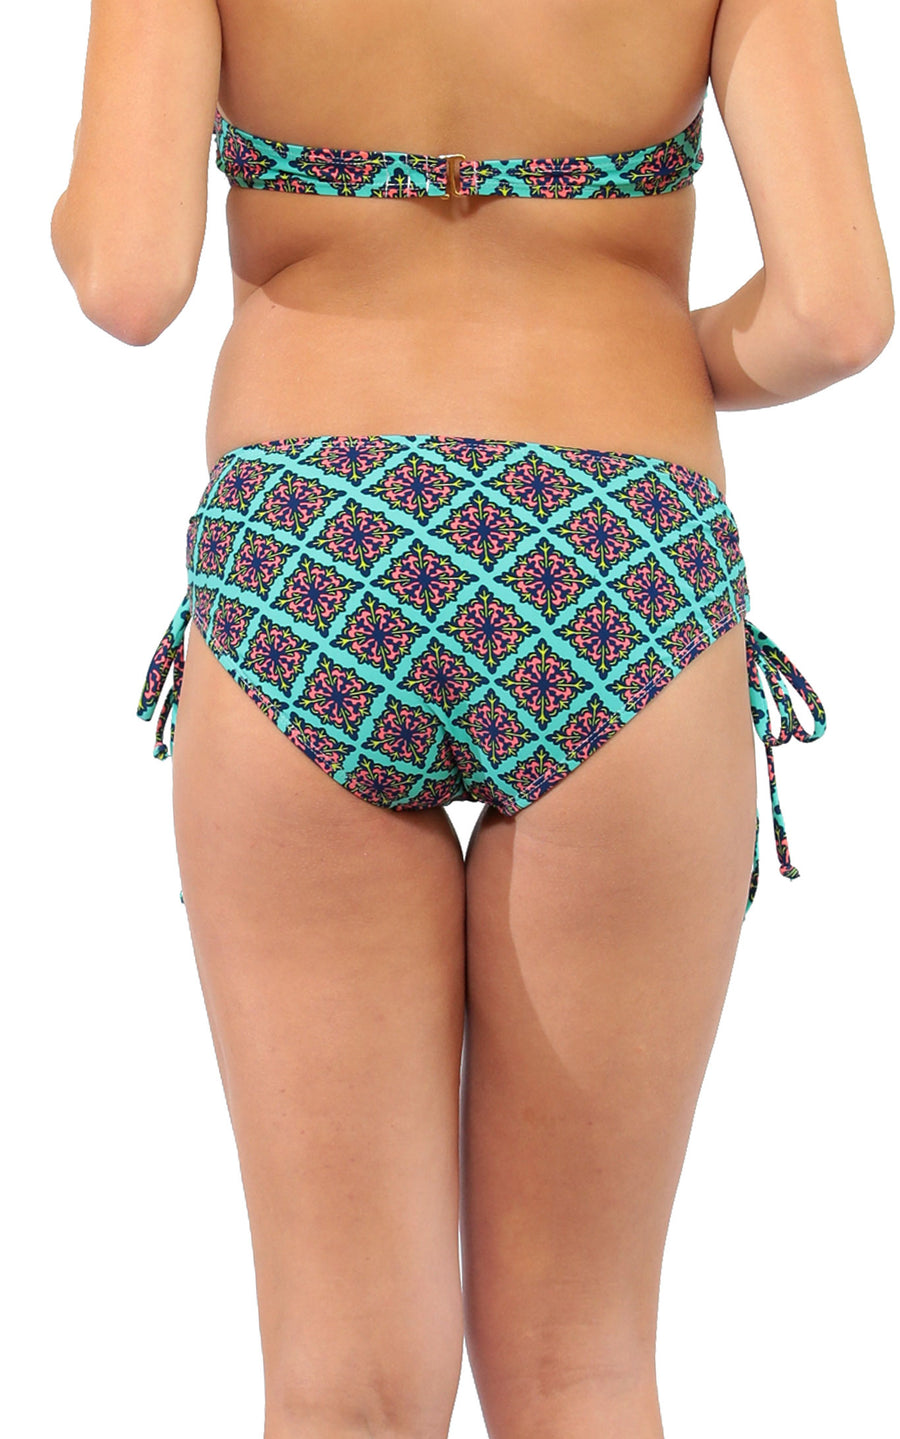 All For Color-Sea Jewel Lace Up Bikini Bottom - FINAL SALE-Swimwear